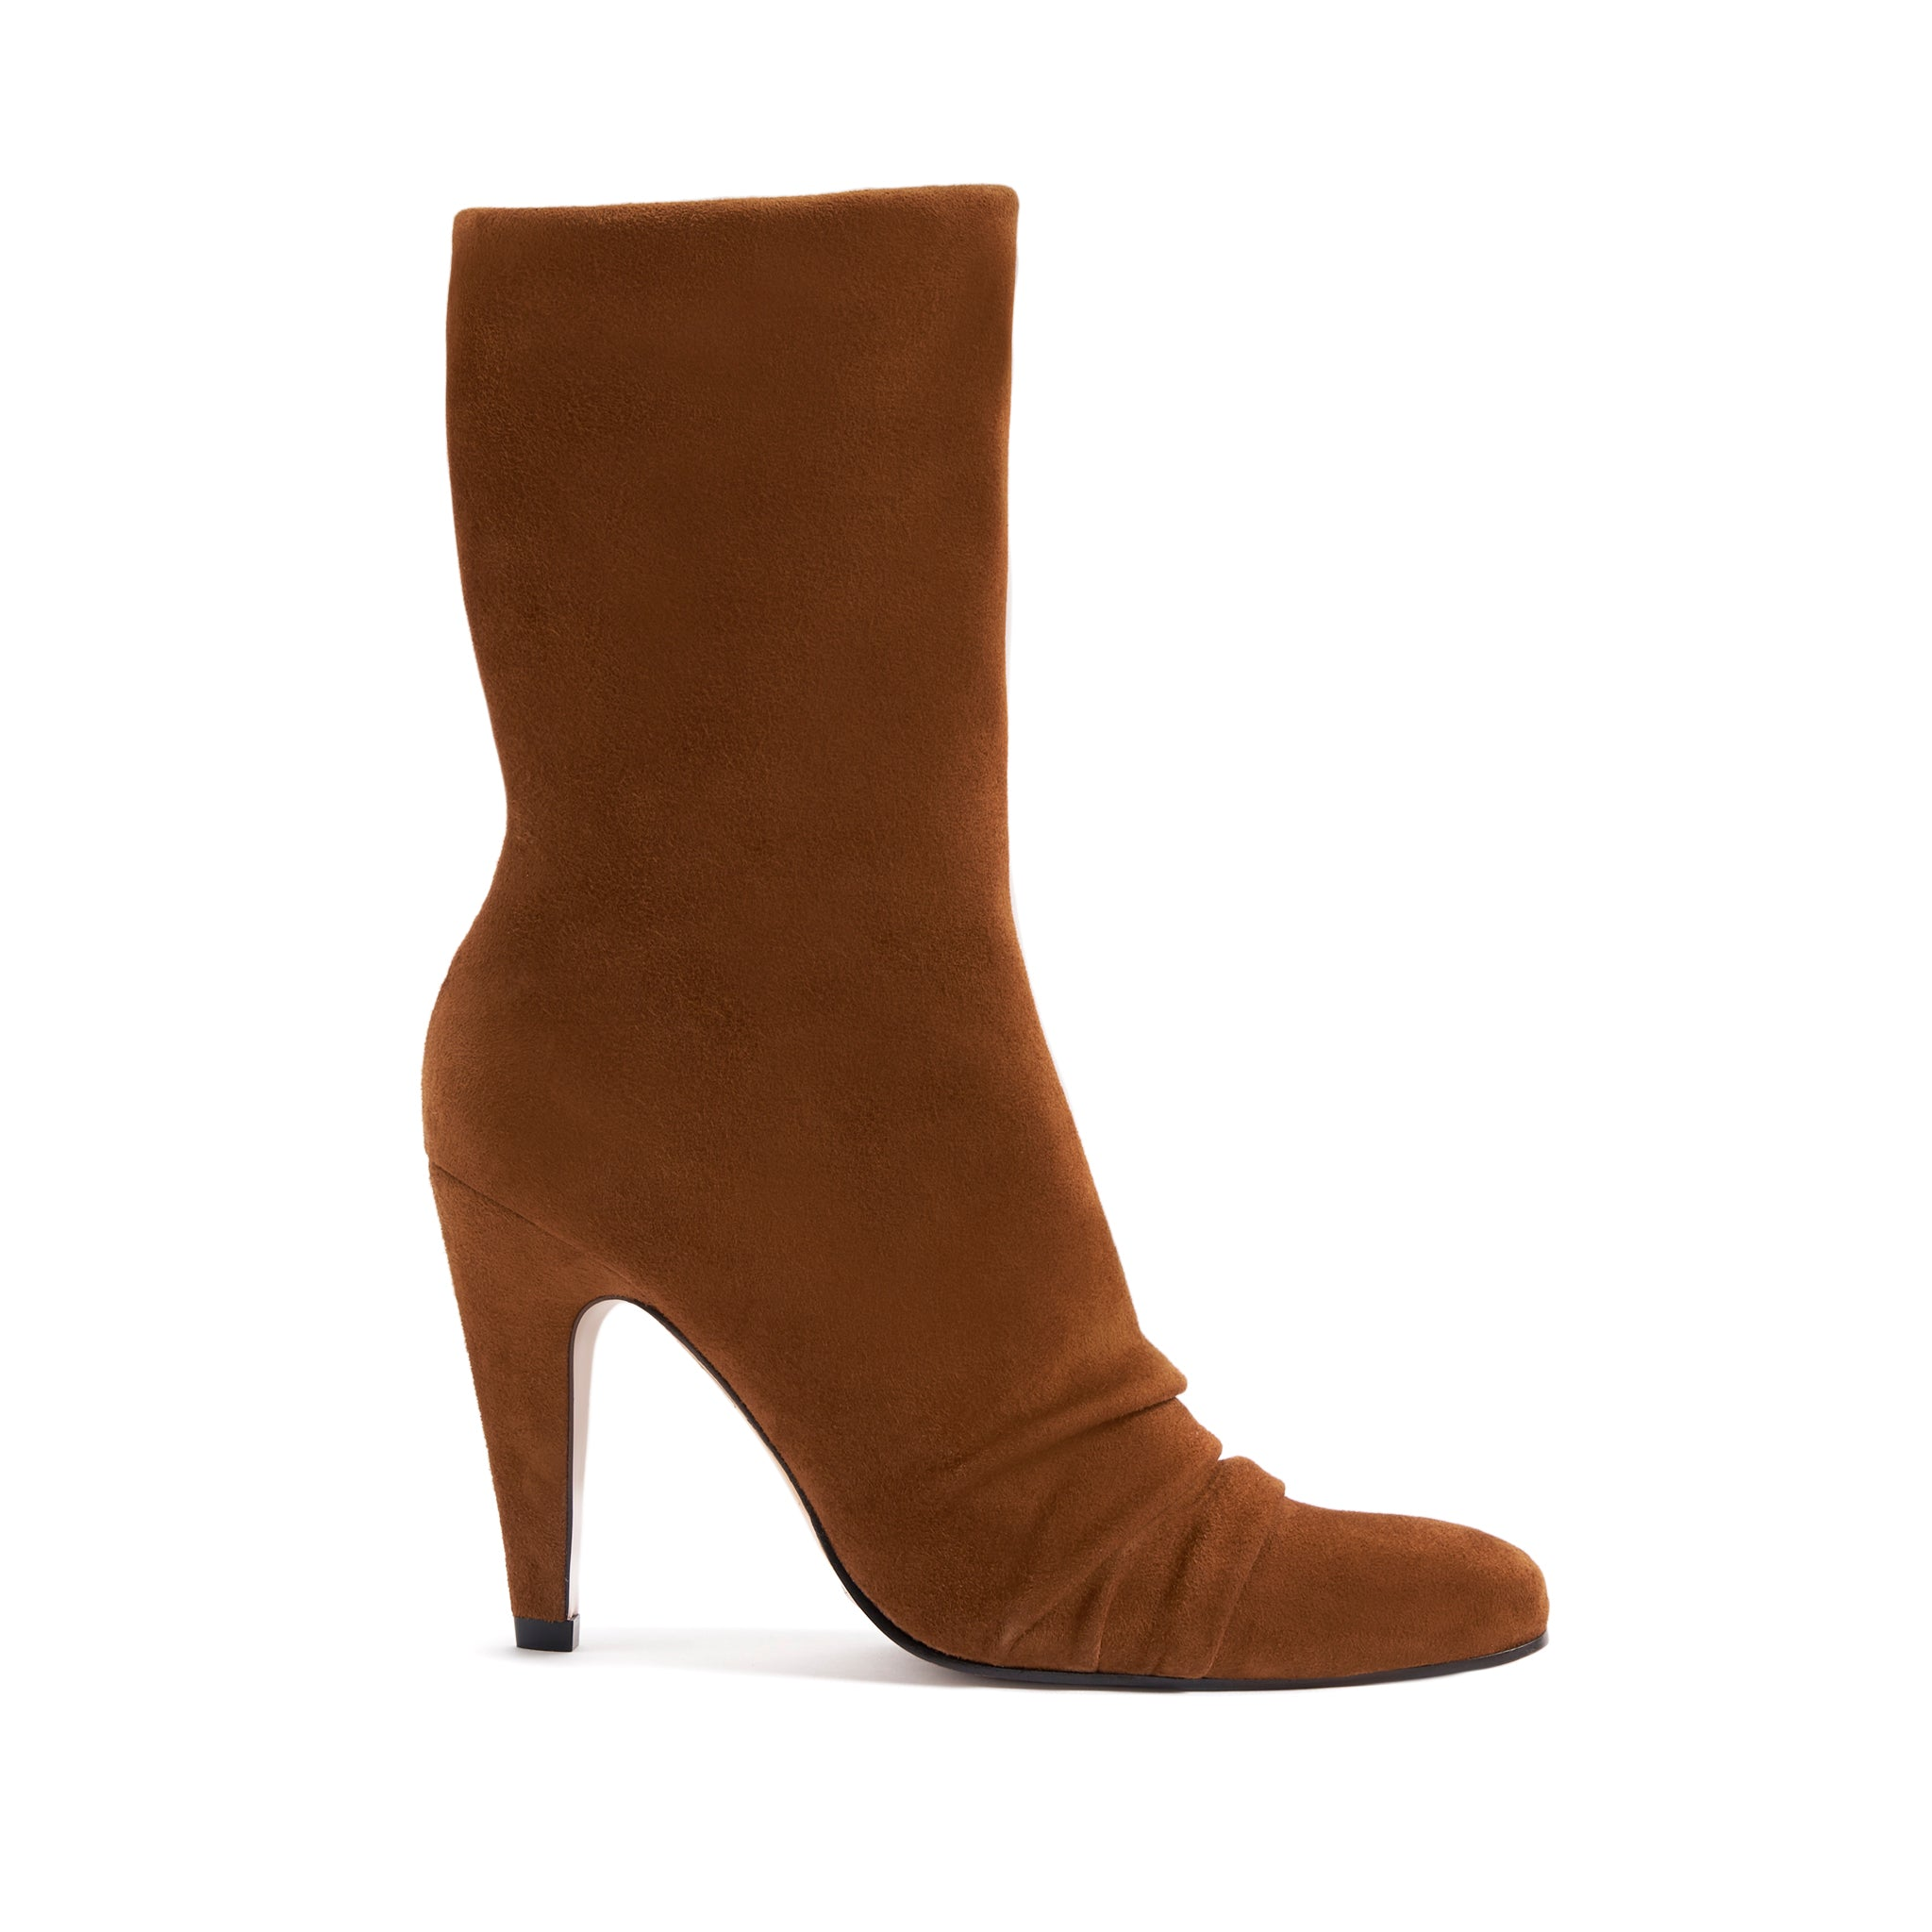 Alicie Booties Cuoio Suede